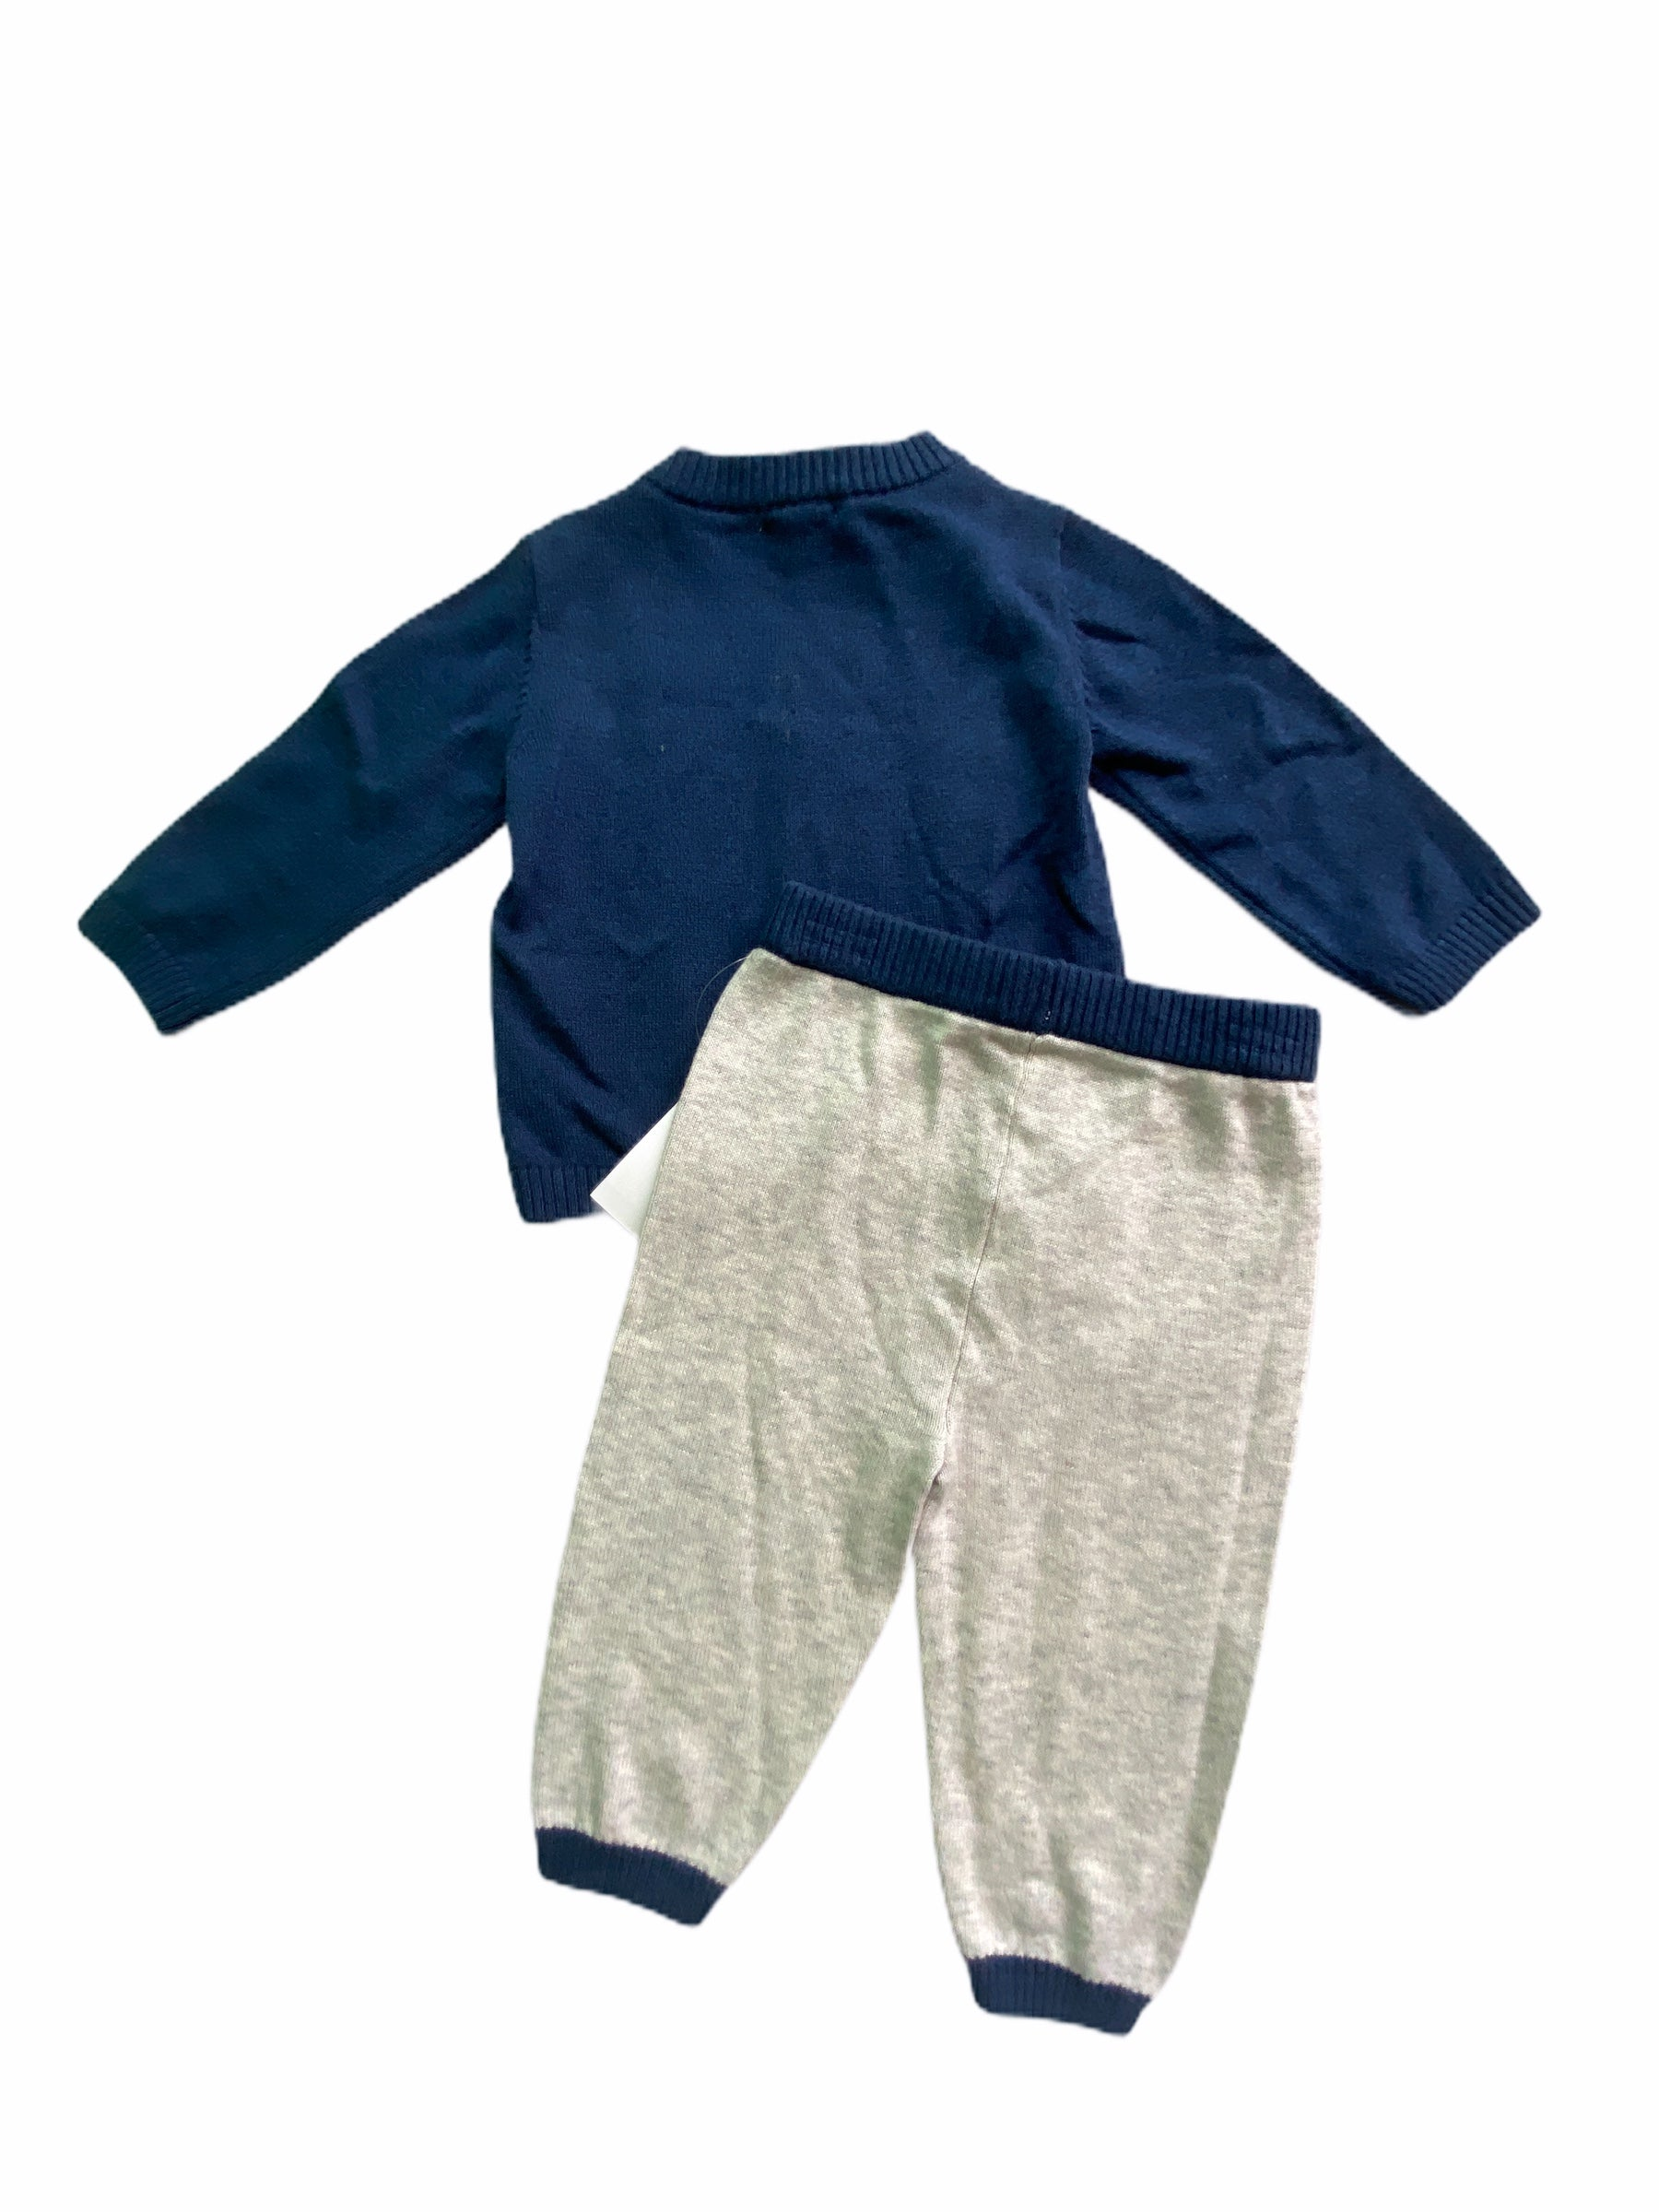 Calvin Klein Navy Sweater Pant Set NWT (3/6M Boys)